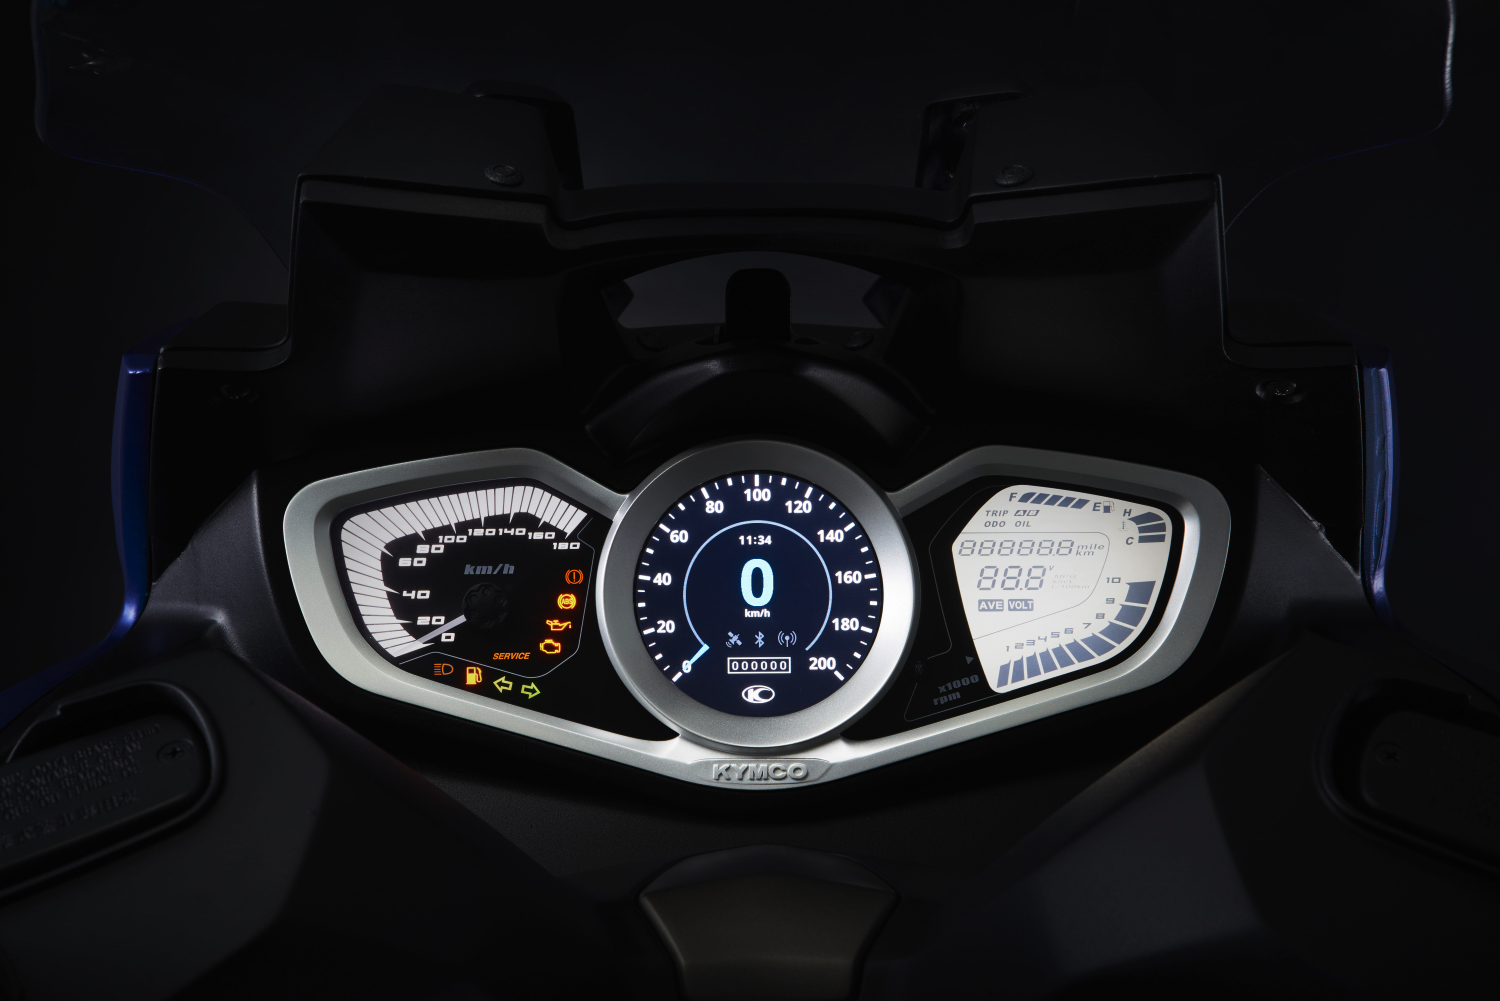 NEW XCITING S 400-dashboard-2.JPG